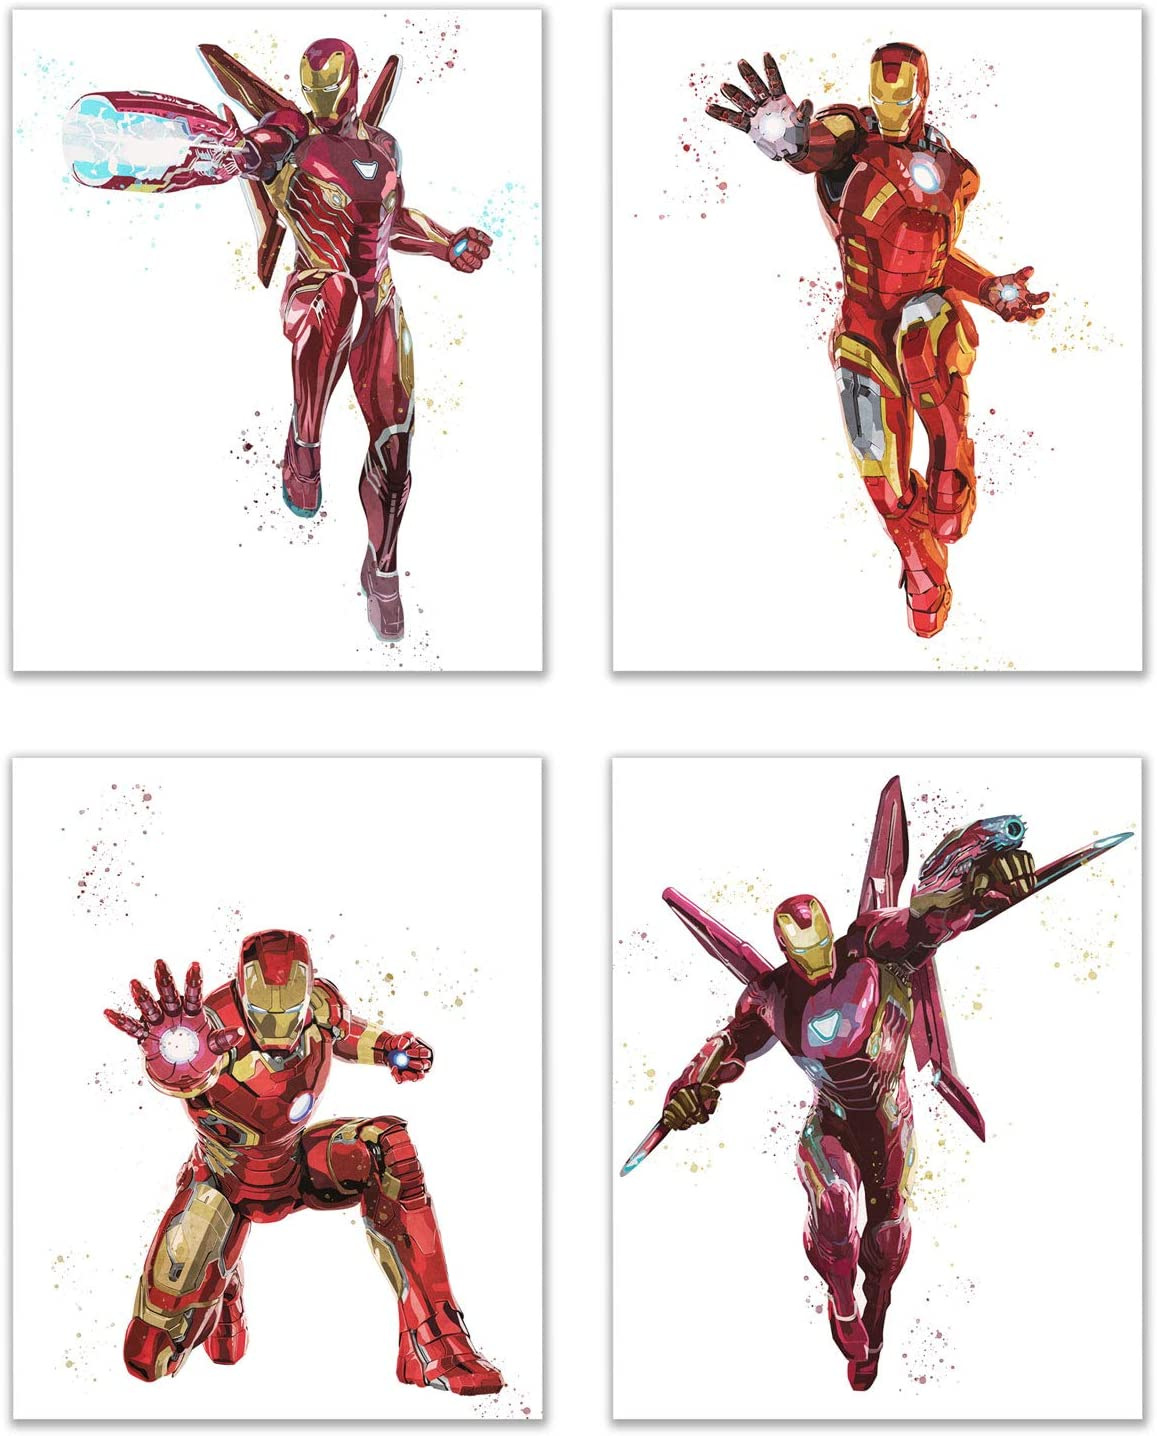 Iron Man Watercolor Poster Prints - Set of 4 (8x10) Infinity War Superhero Wall Art Decor